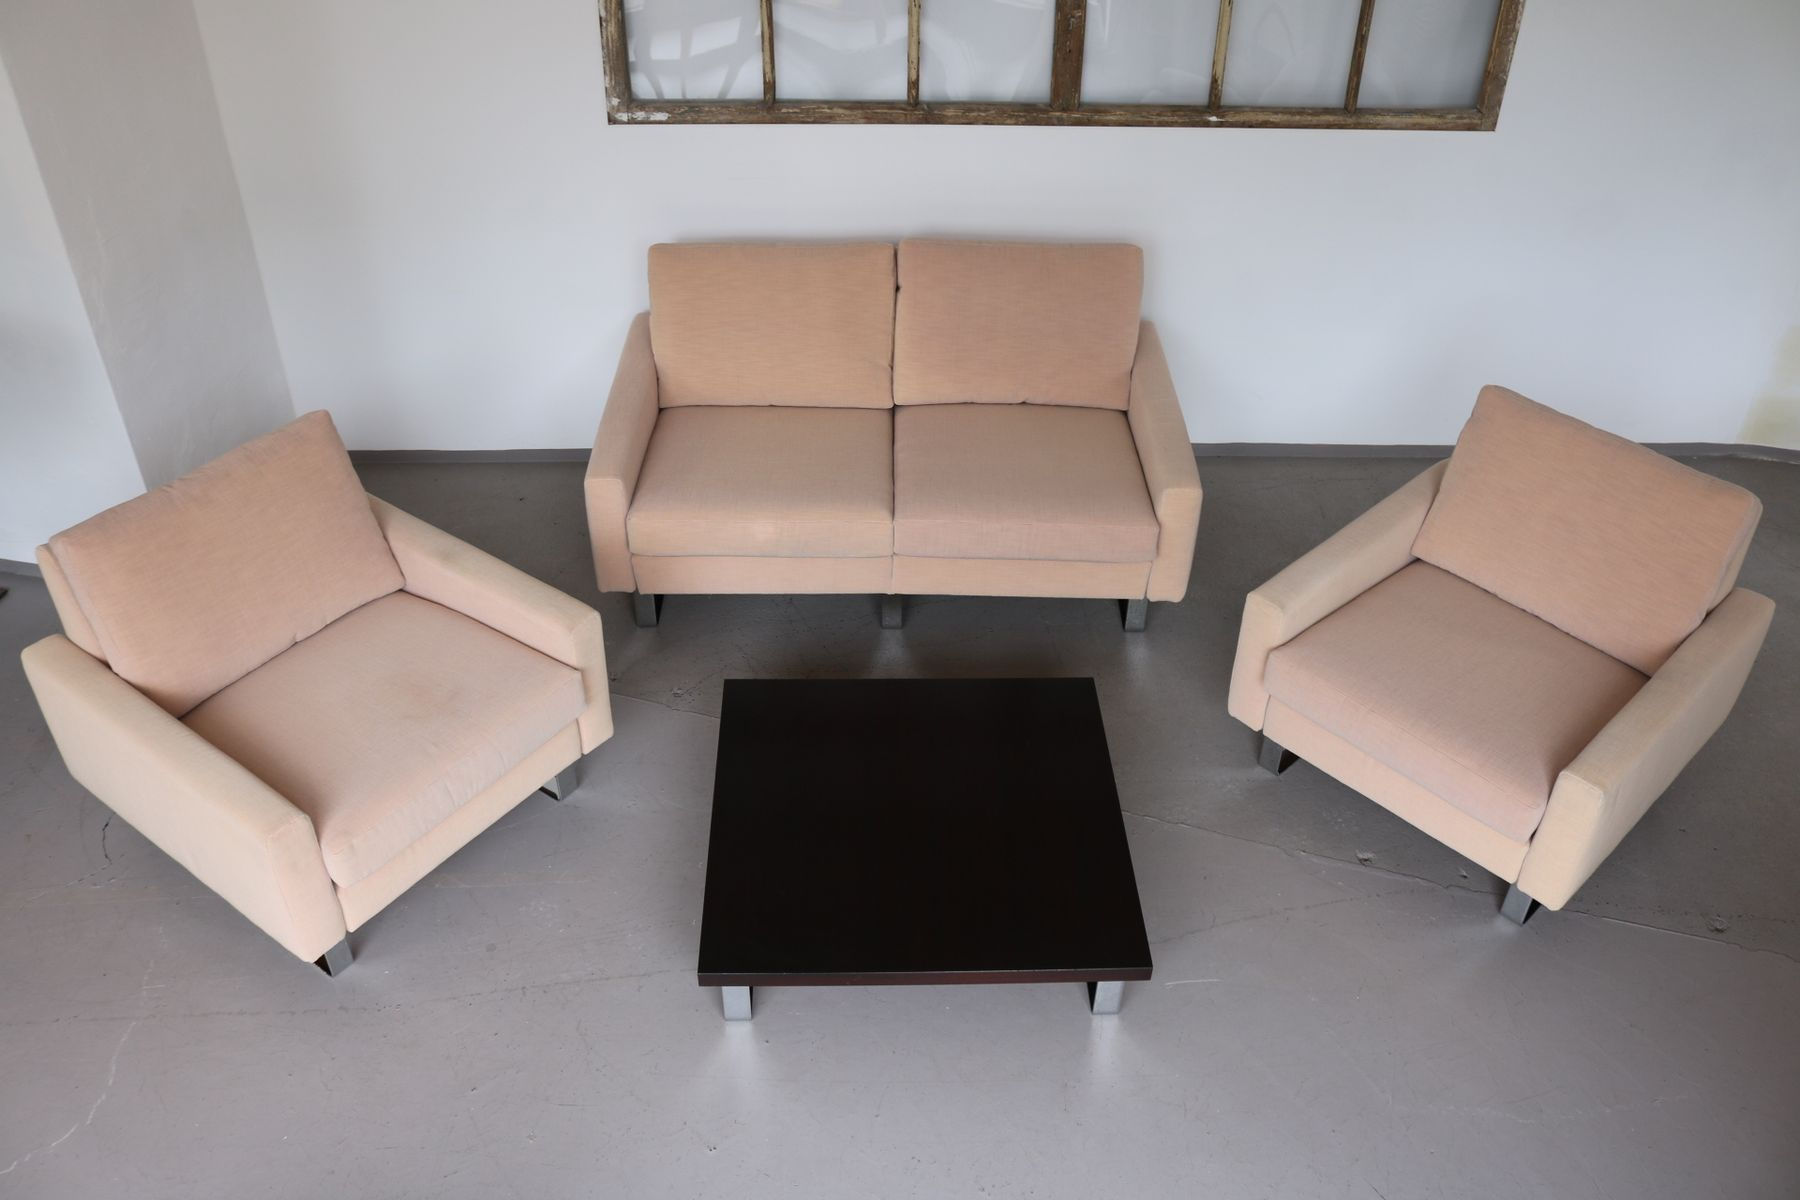 Conseta Lounge Chairs, Sofa & Table by F. W. Möller for Cor, 1960s ...